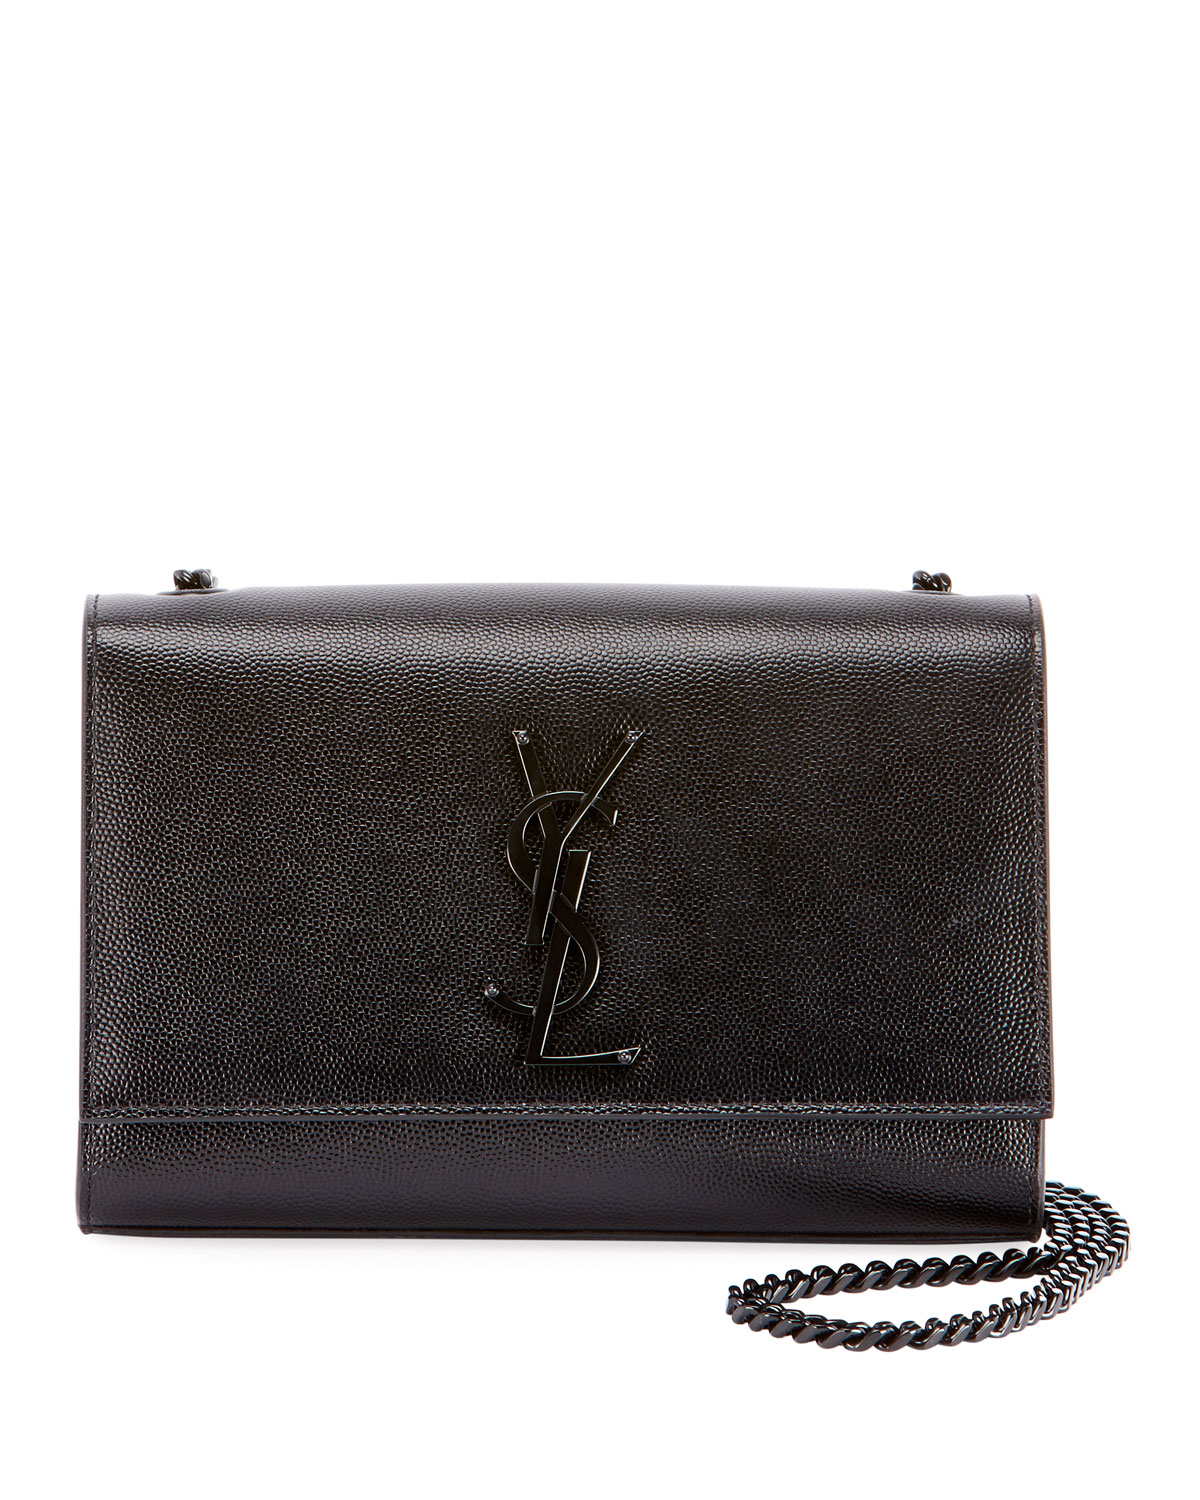 1dd9432eab33 Saint Laurent Kate Monogram YSL Small Chain Shoulder Bag